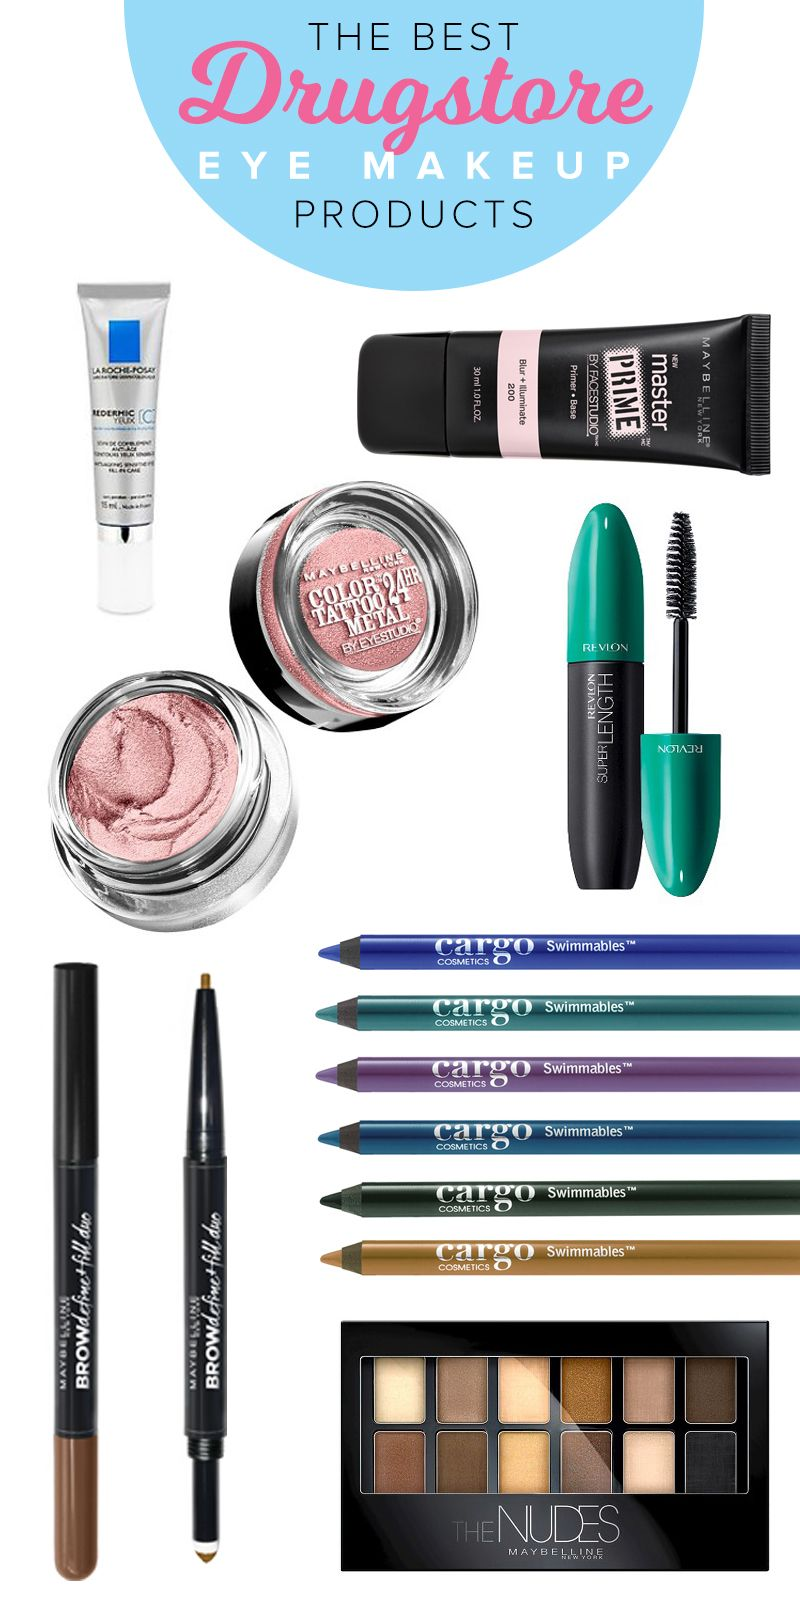 15 drugstore eye makeup picks celebrity makeup artists buy in bulk